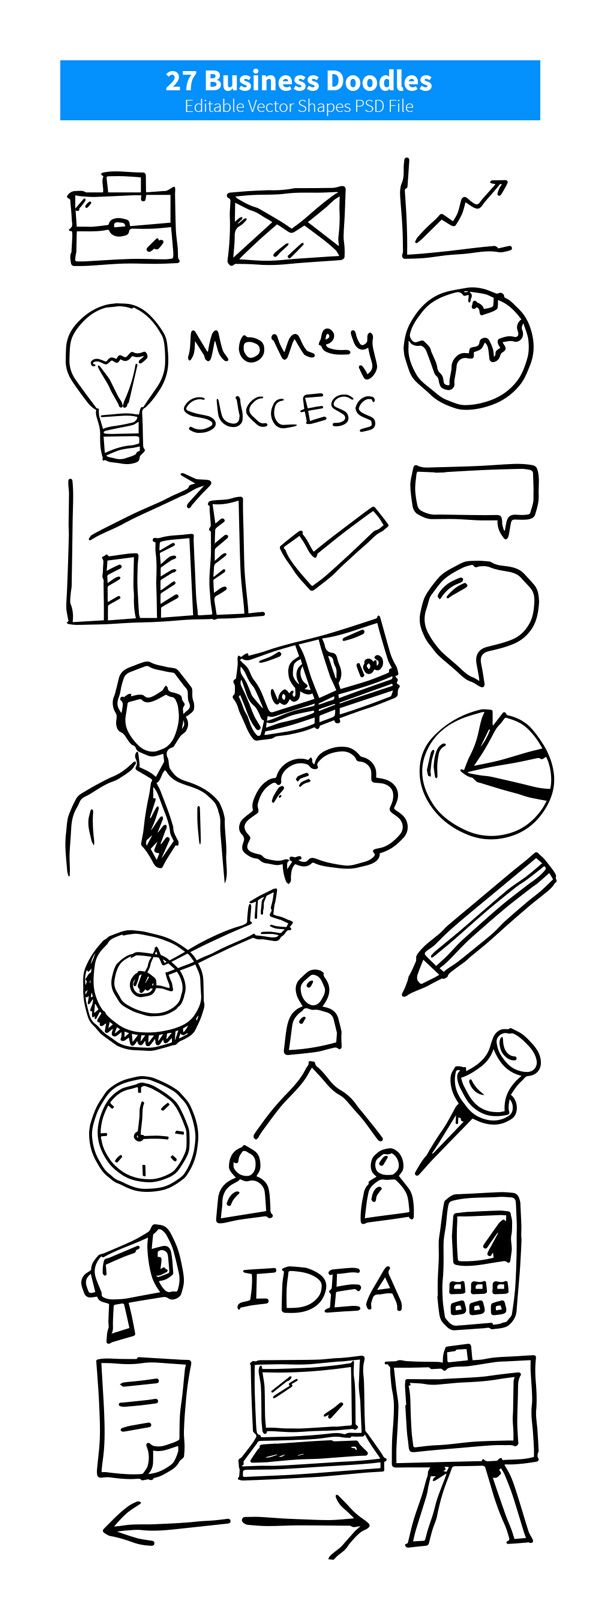 27 Business Doodles (Vector PSD) 손그림 아이콘 (Vector PSD)